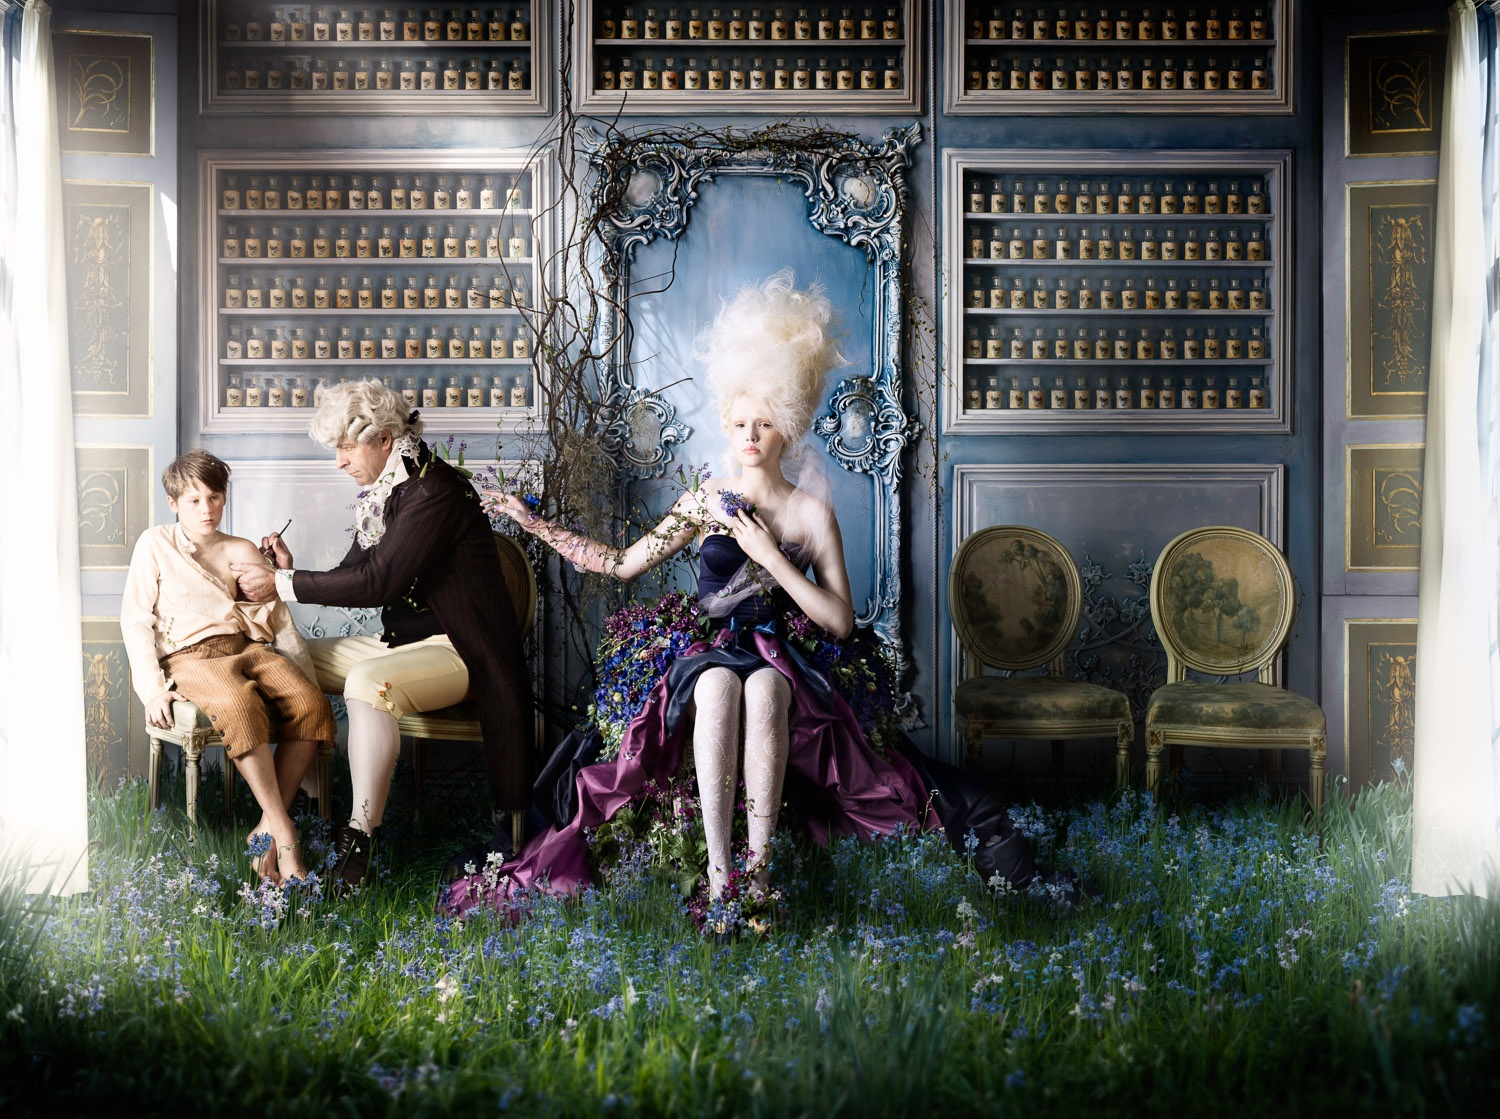 Alexia Sinclair Sends a Powerful Pro-Vaccination Message with Hauntingly Beautiful Photo